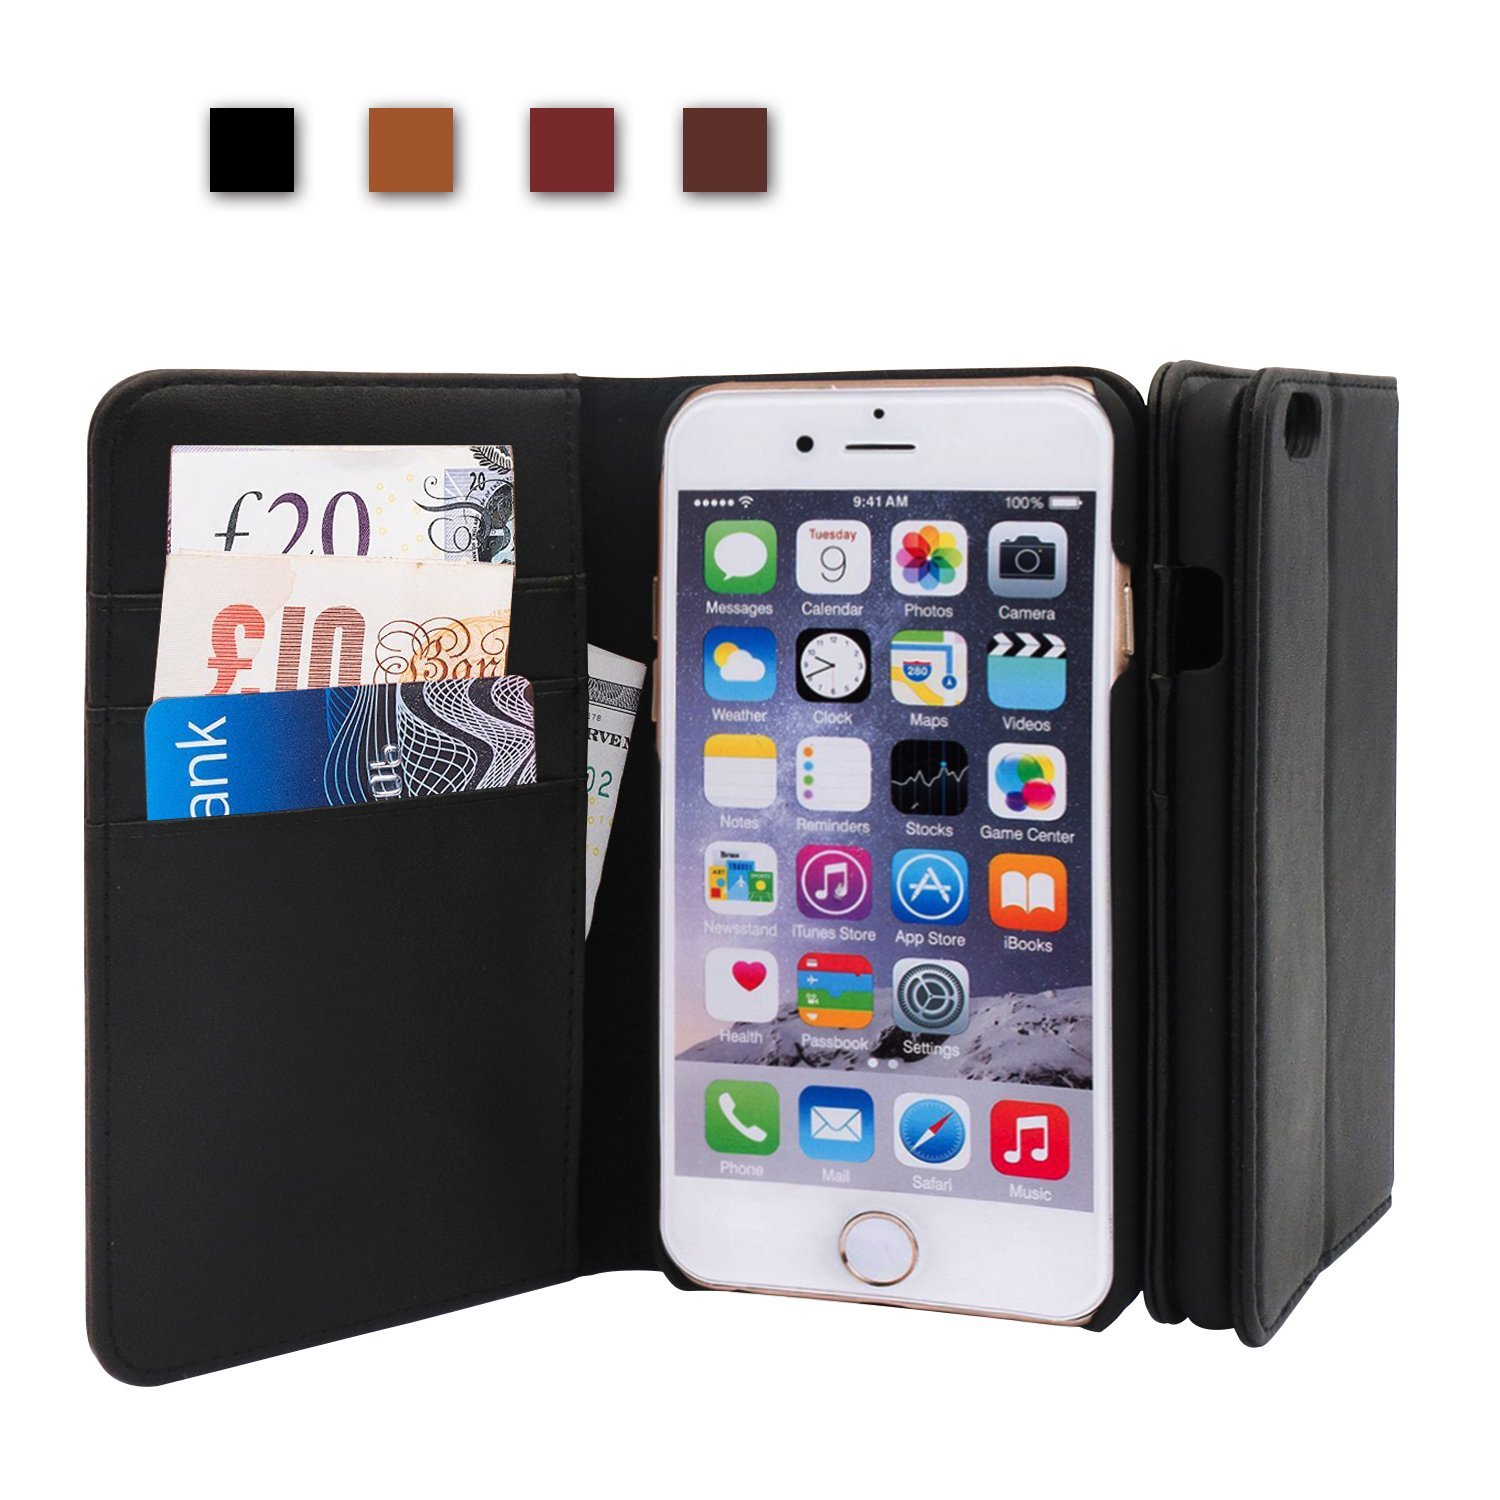 iPhone 6 Case iPhone 6S Case, Shalwinn Genuine Leather Wallet Case, Classic Folio Case with Stand and Card Slots, Magnetic Closure for iPhone 6 and iPhone 6S, (Black)